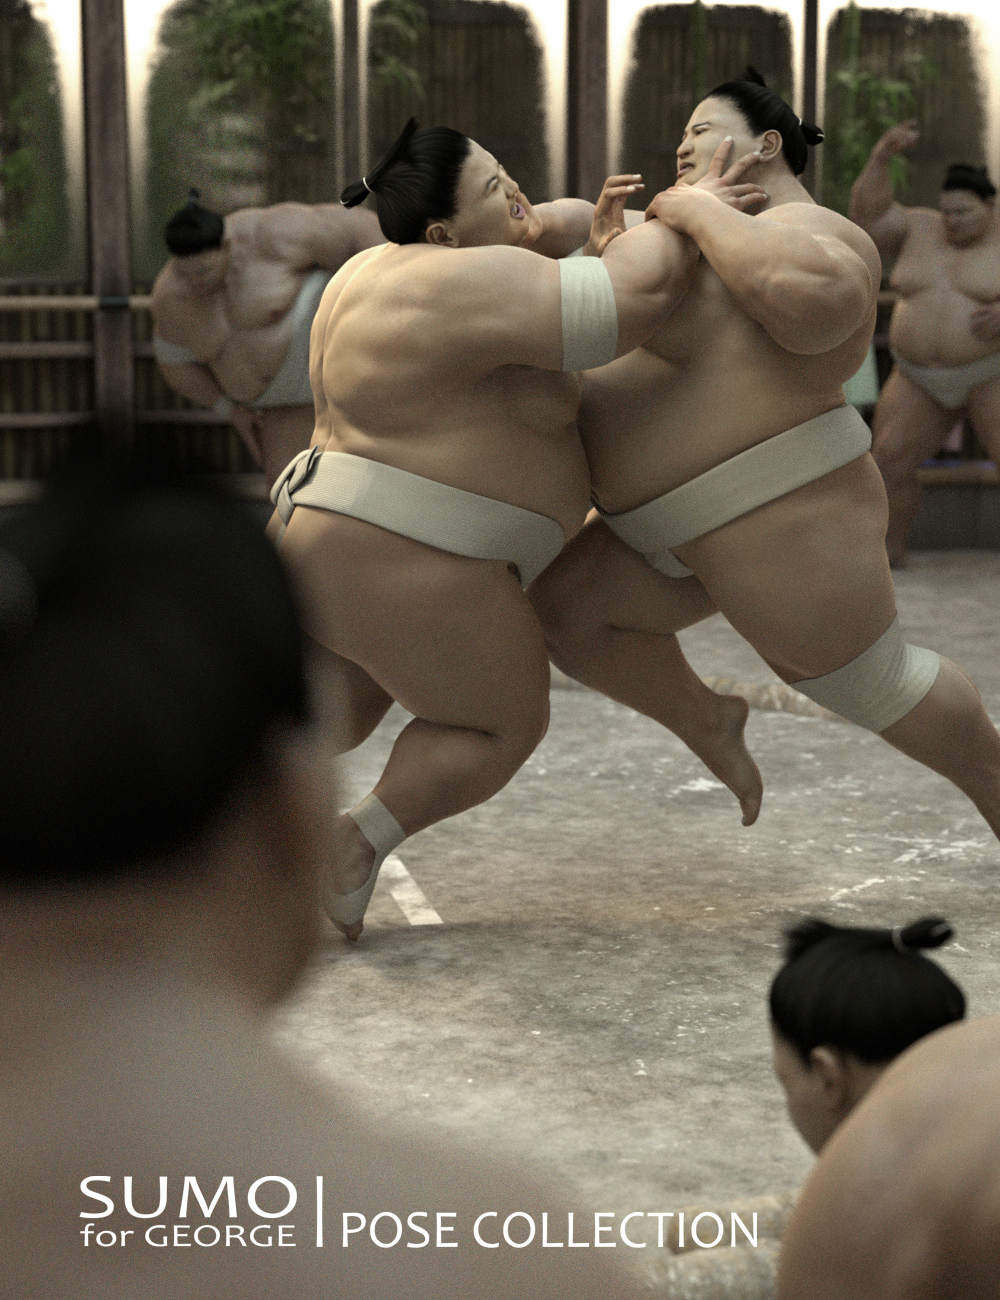 Sumo Poses for George by: Deepsea, 3D Models by Daz 3D